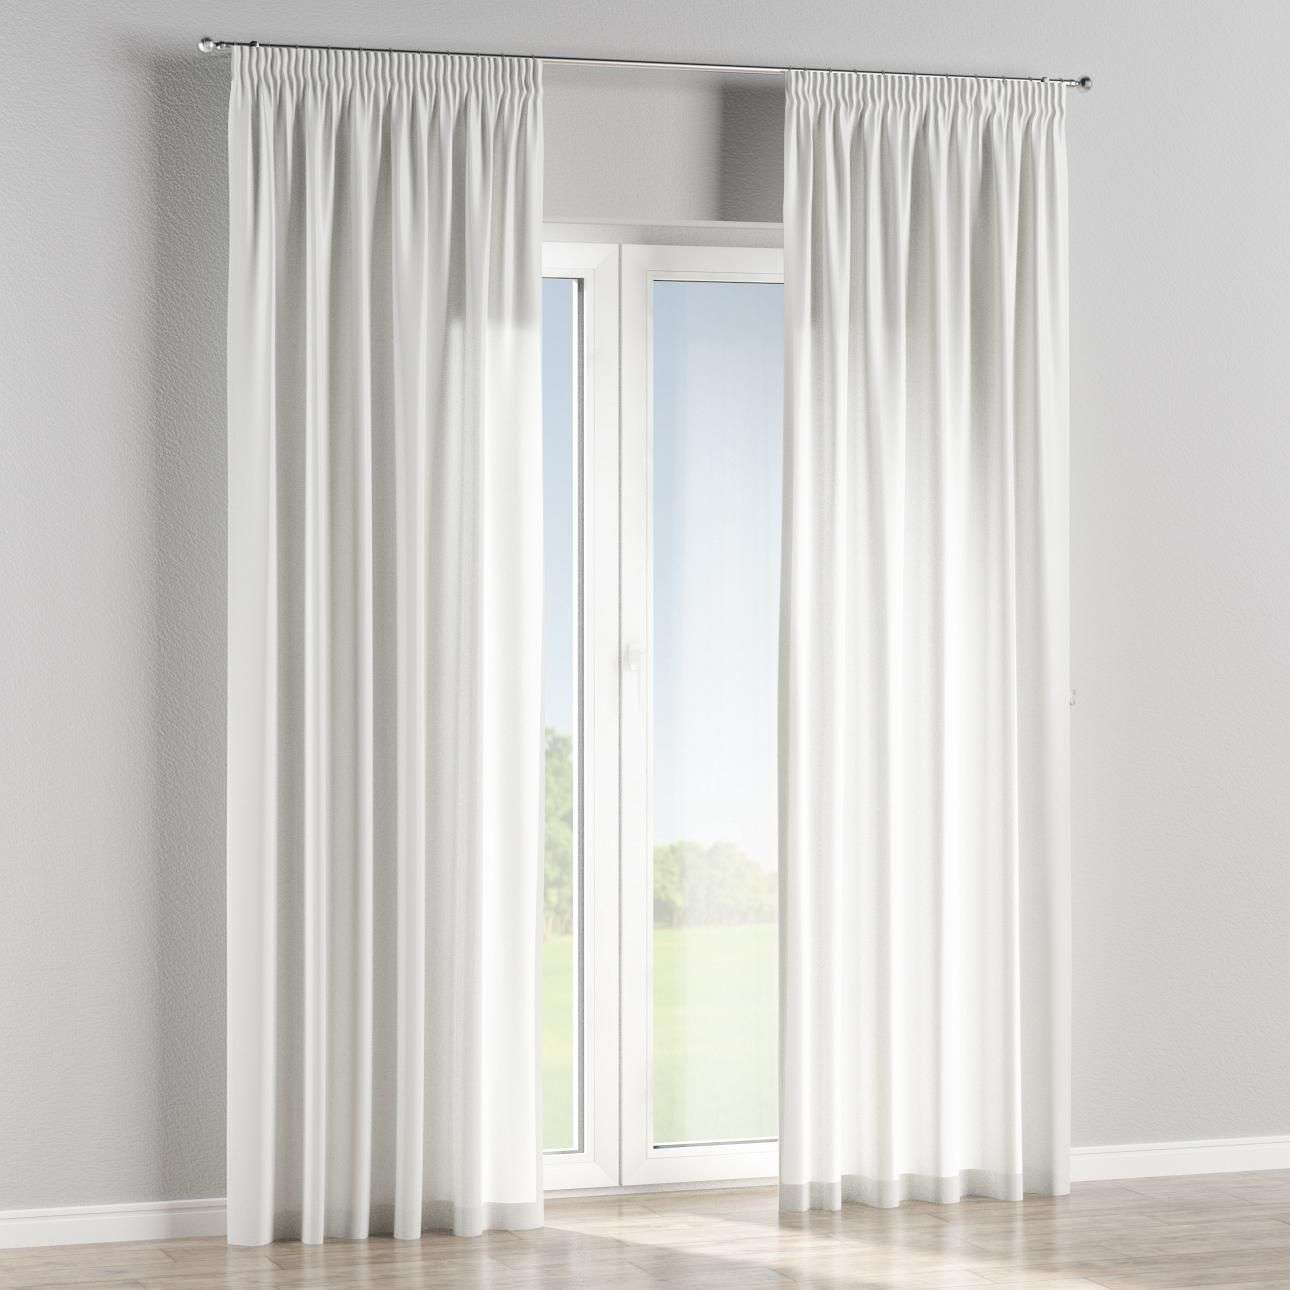 Pencil pleat curtains in collection Milano, fabric: 150-22